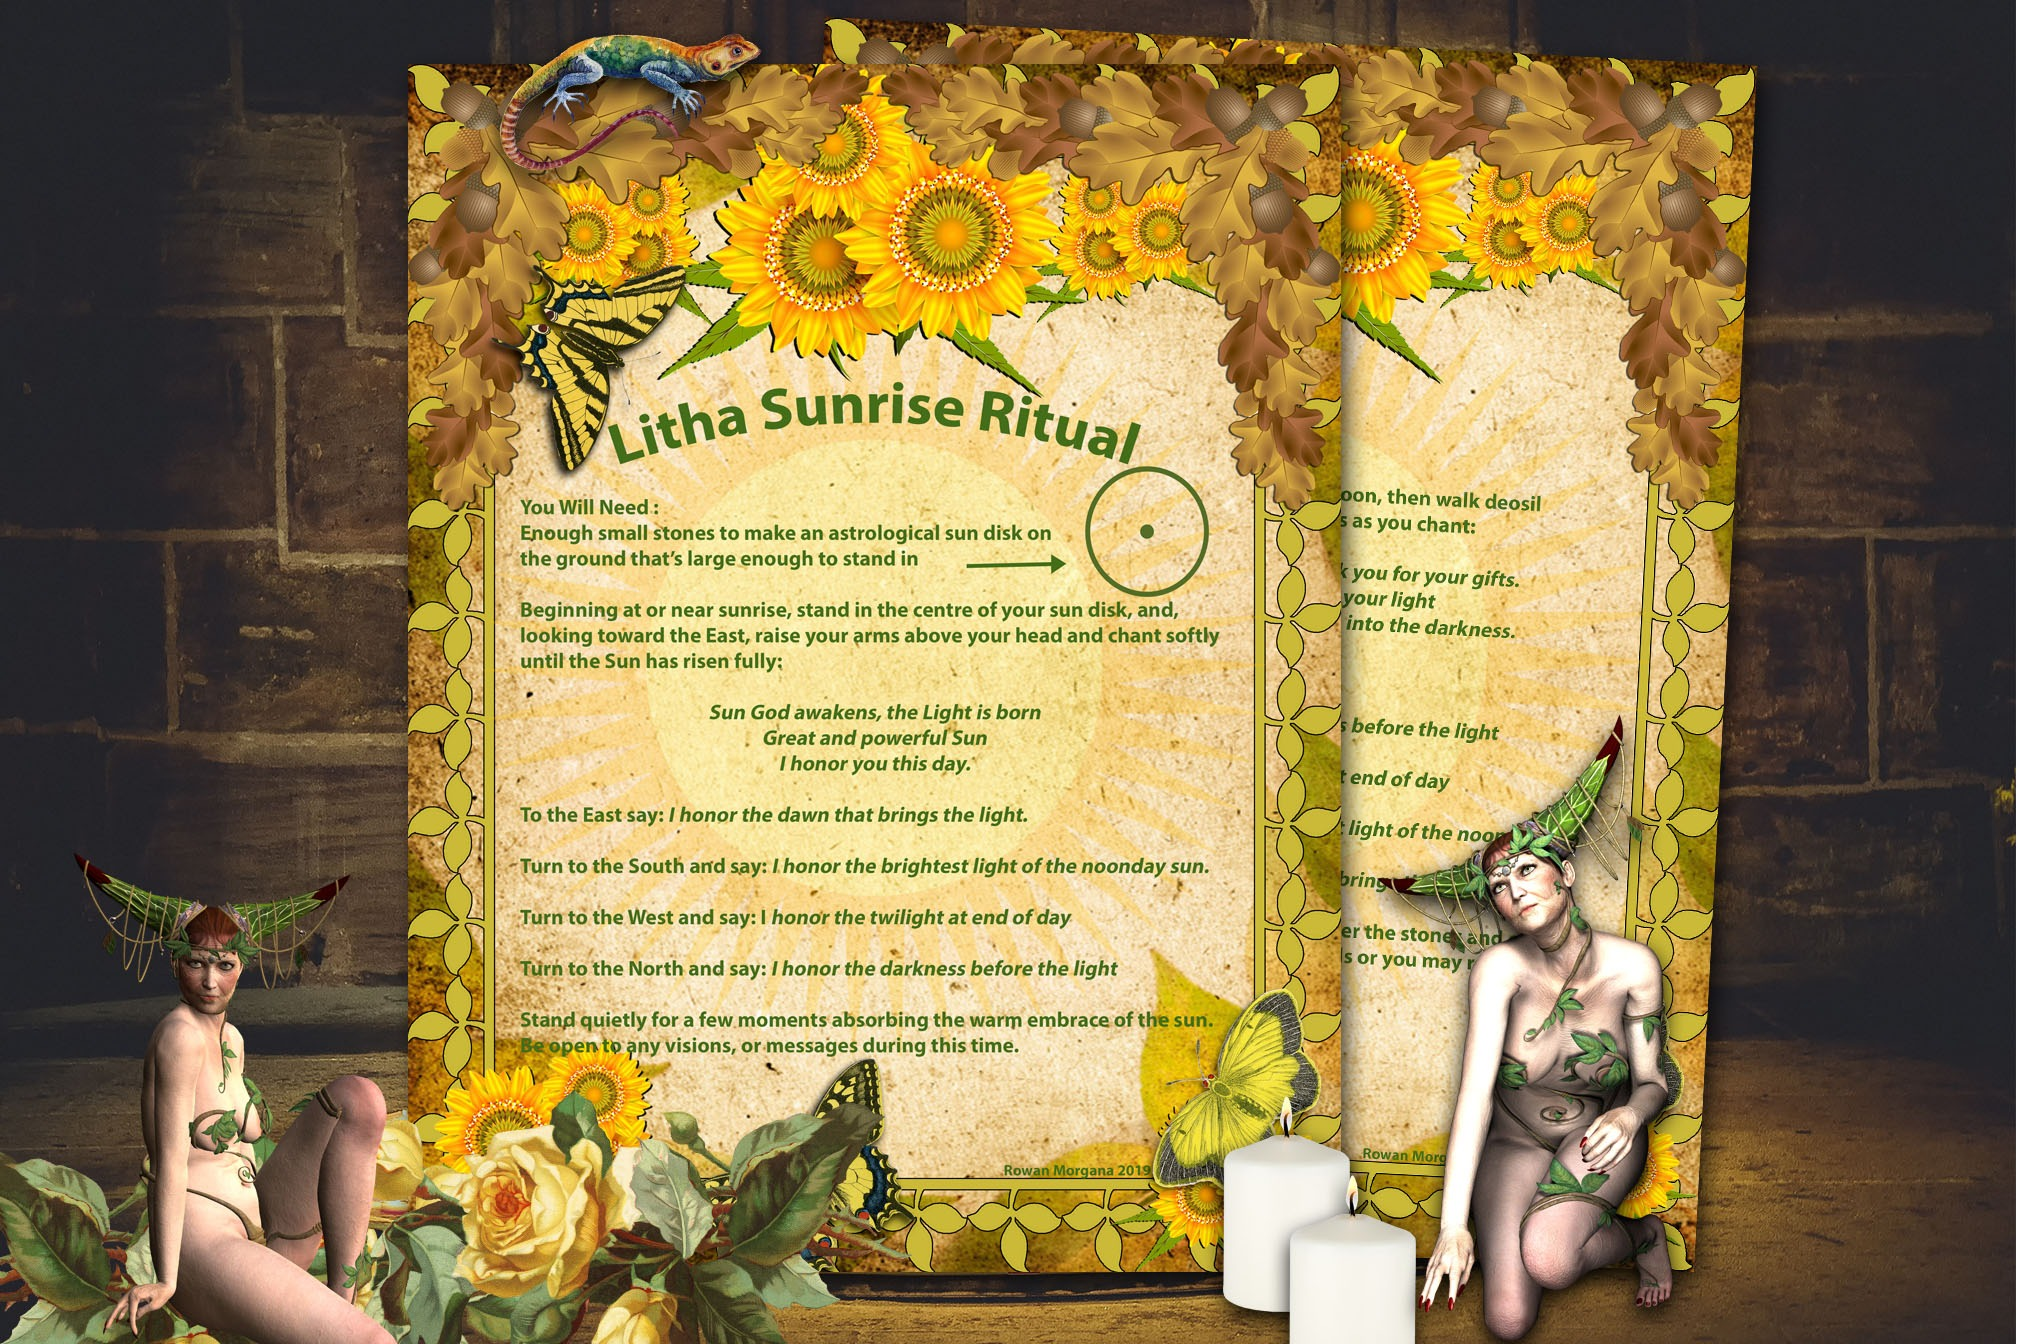 LITHA SUNRISE RITUAL